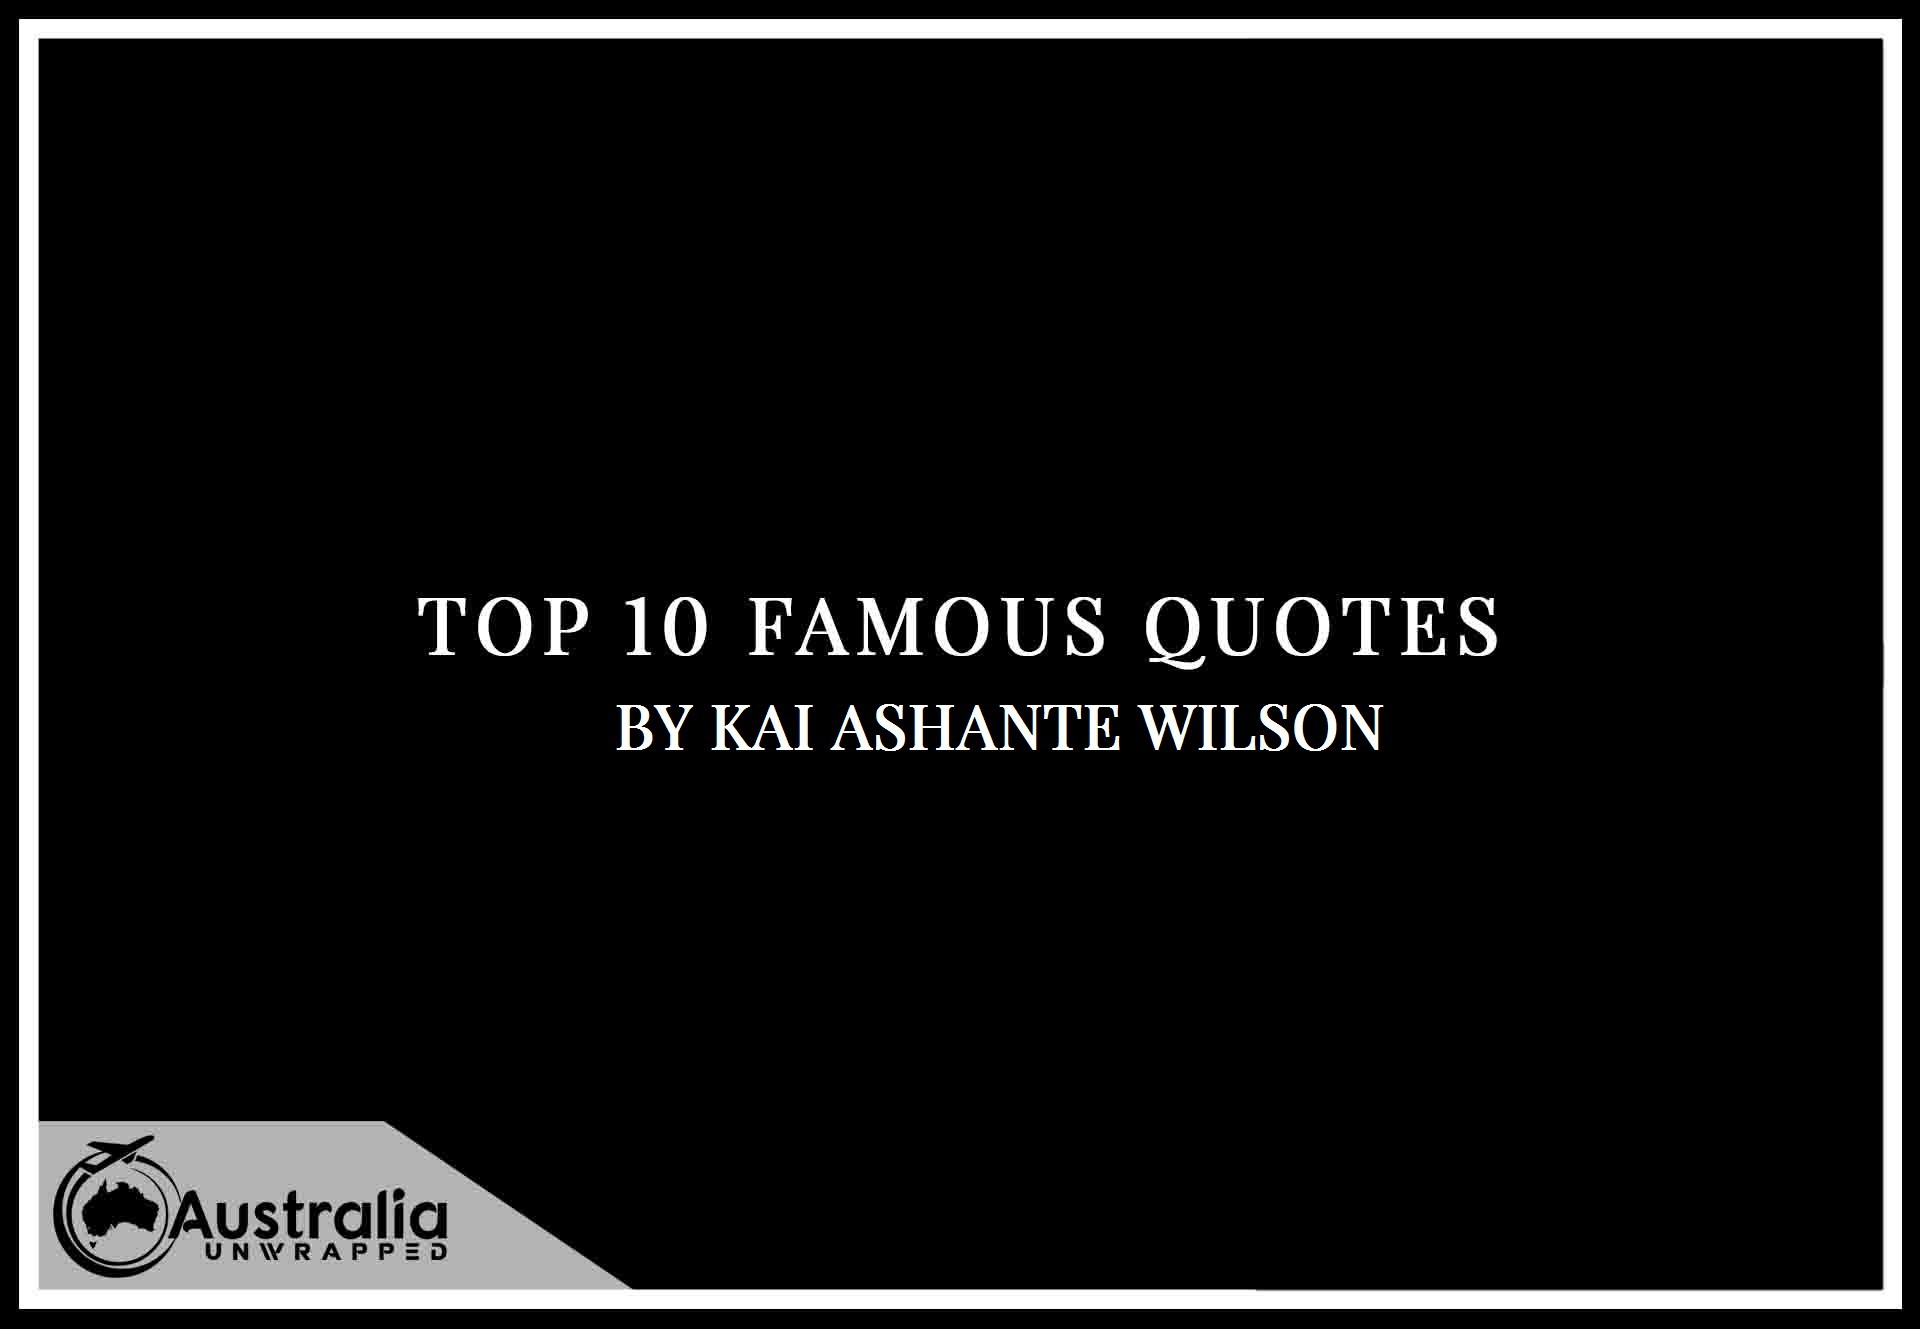 Kai Ashante Wilson's Top 10 Popular and Famous Quotes